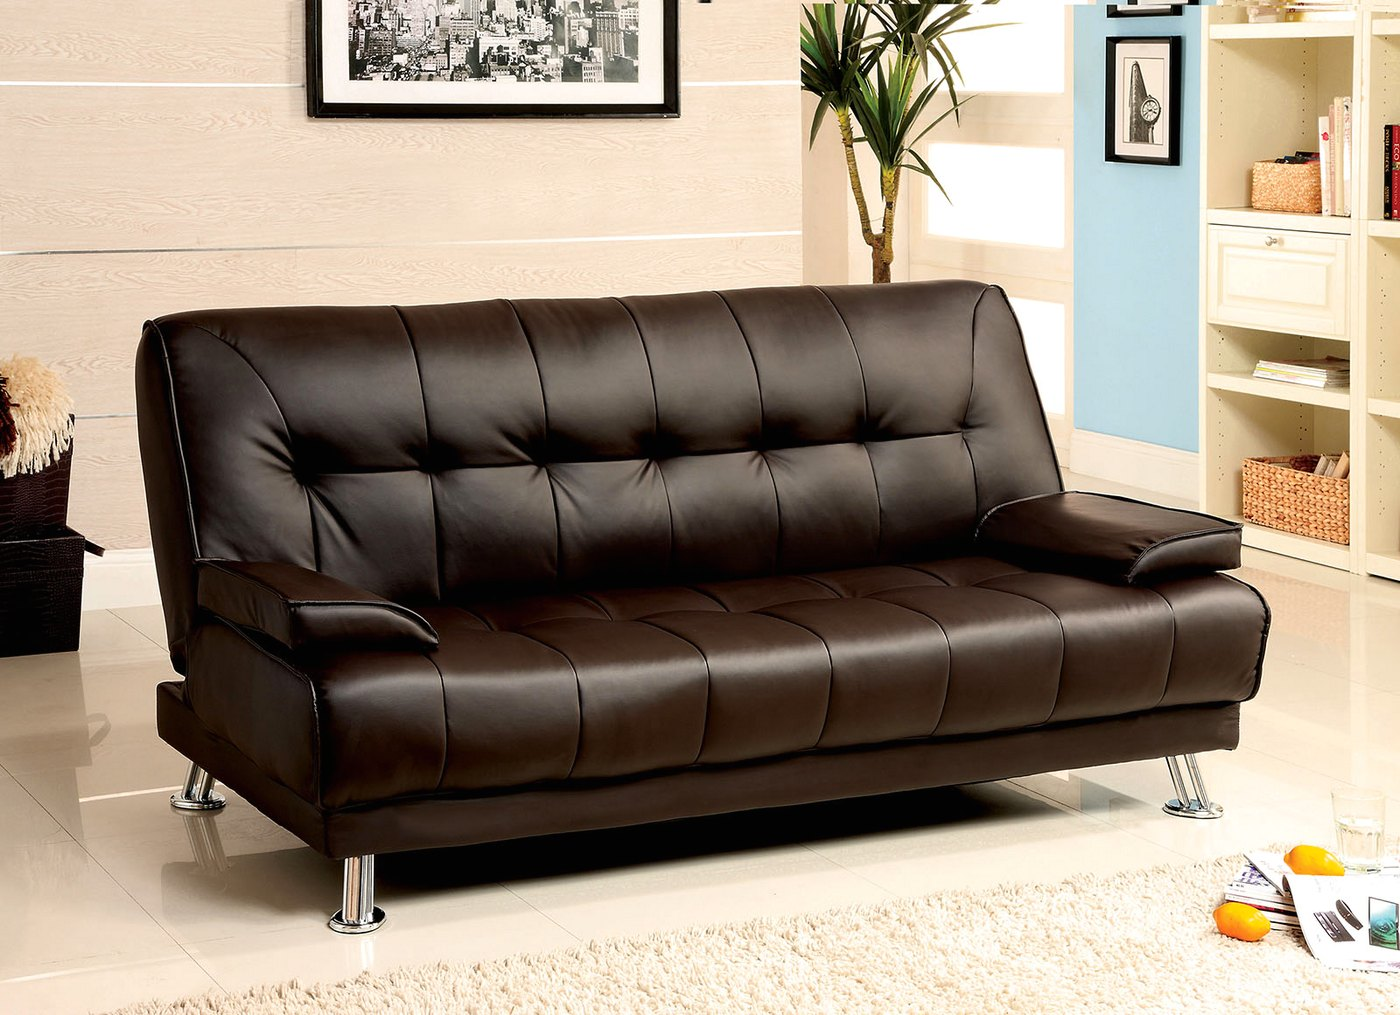 coaster futon sofa bed with removable armrests review leather sectional cup holders beaumont contemporary dark brown set